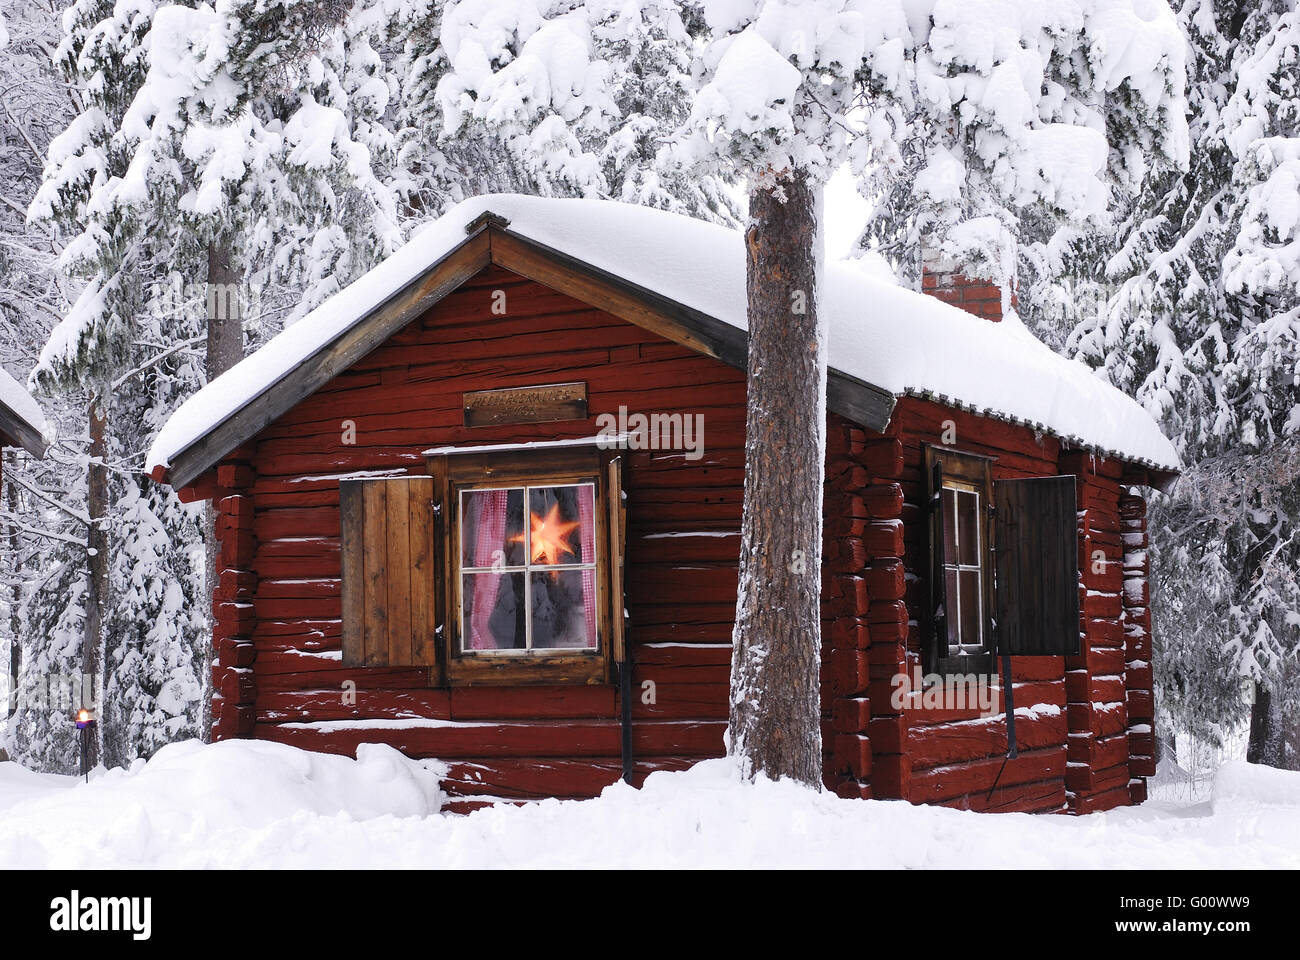 Cabin in snowy forest stock photo royalty free image